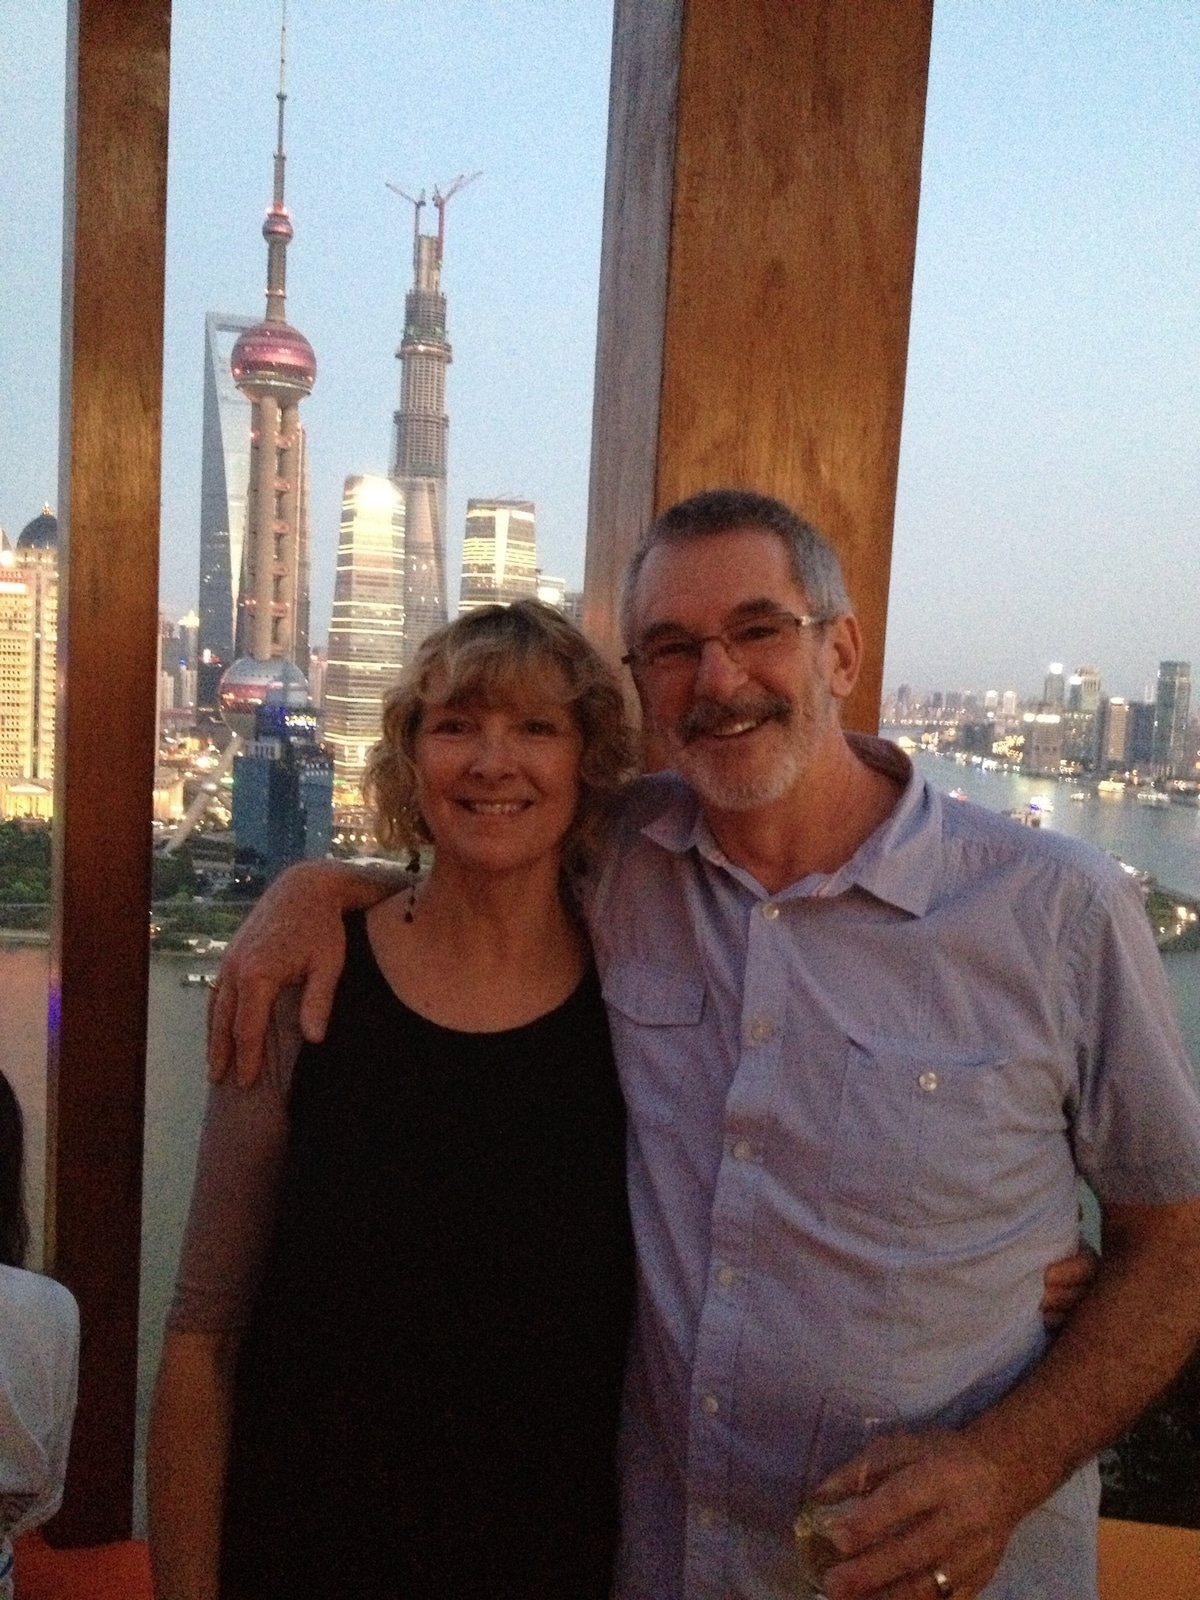 Australian couple who love travel and sharing. We